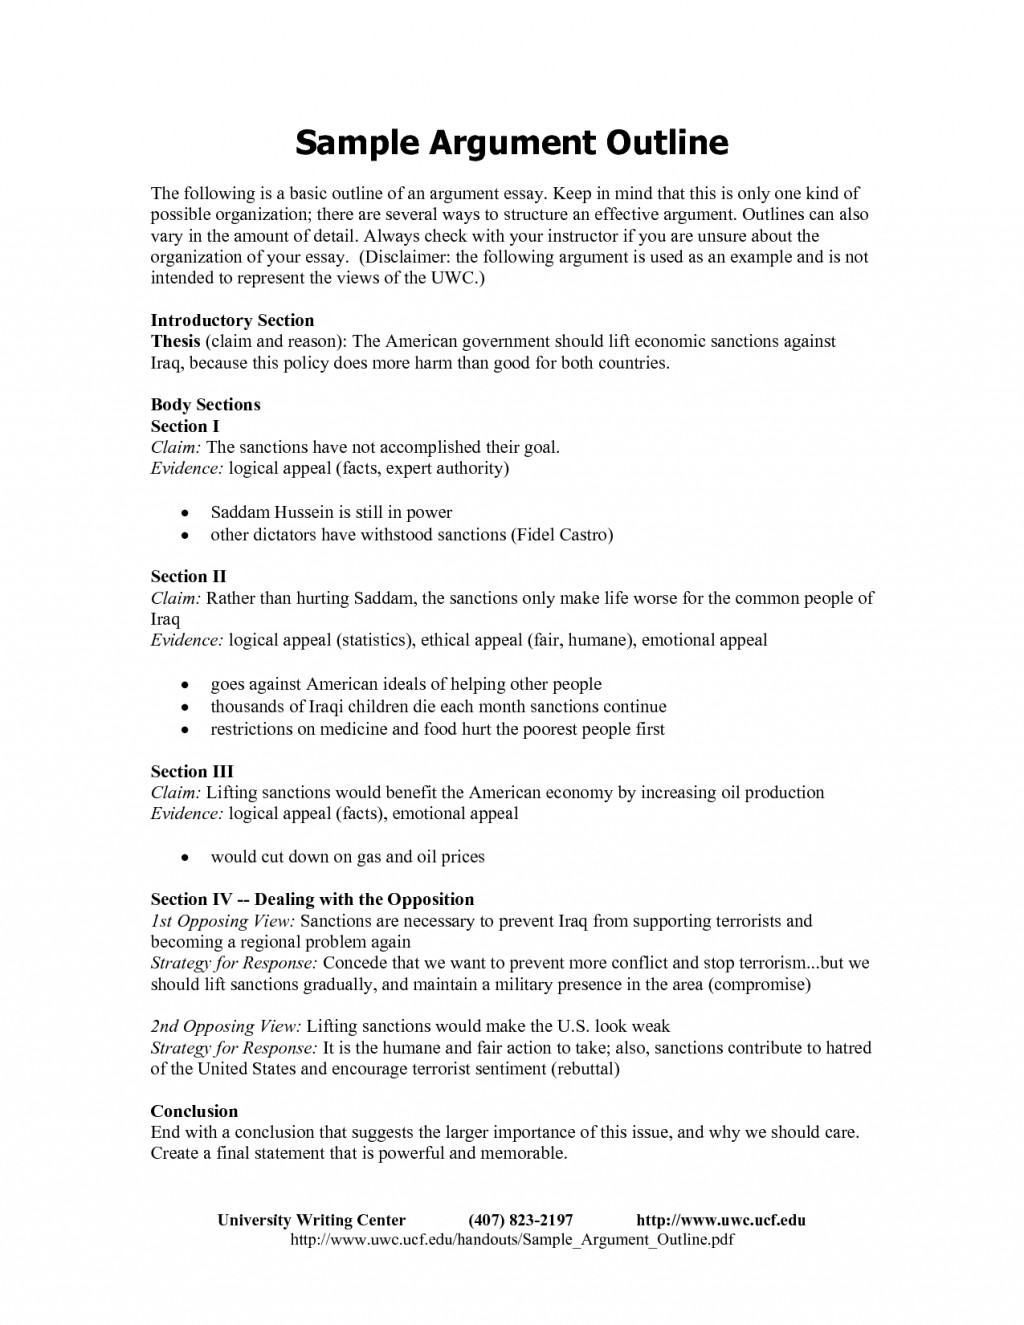 004 Persuasive Essay20per Outline Worksheet Free Printables Research Topics About Health Introduction Sample20 Beautiful Paper Writing Large